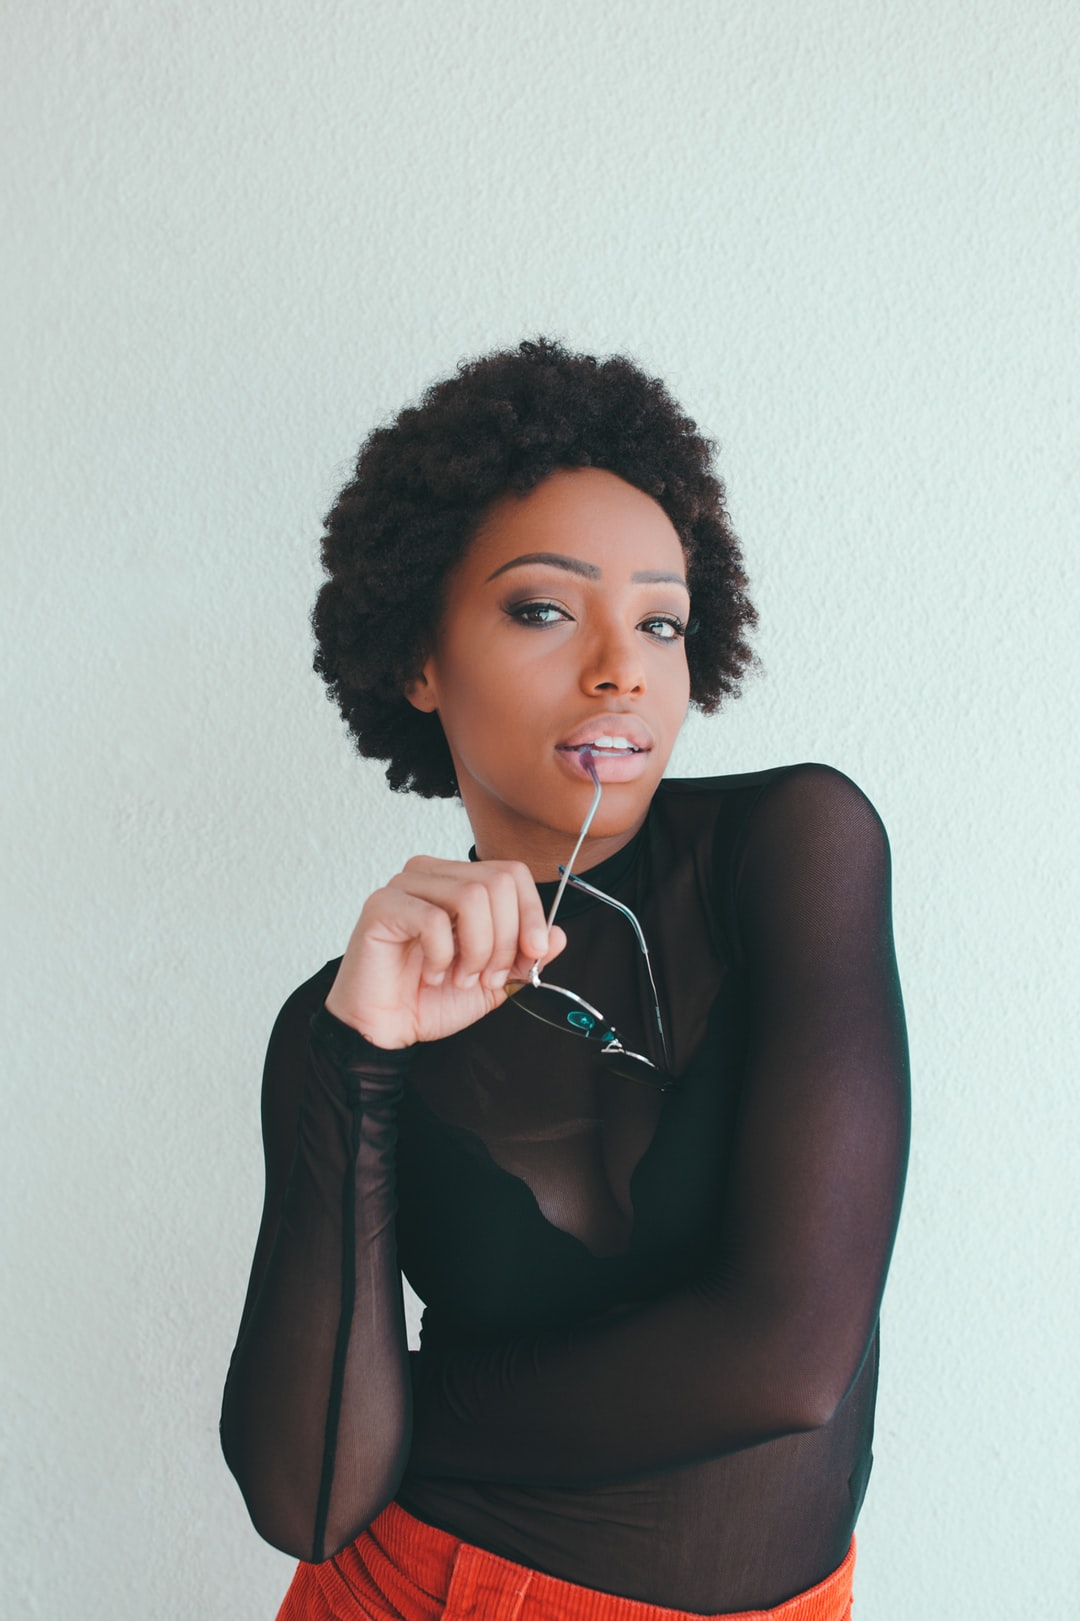 You Caught My Attention Photo By Kal Loftus (@kalvisuals